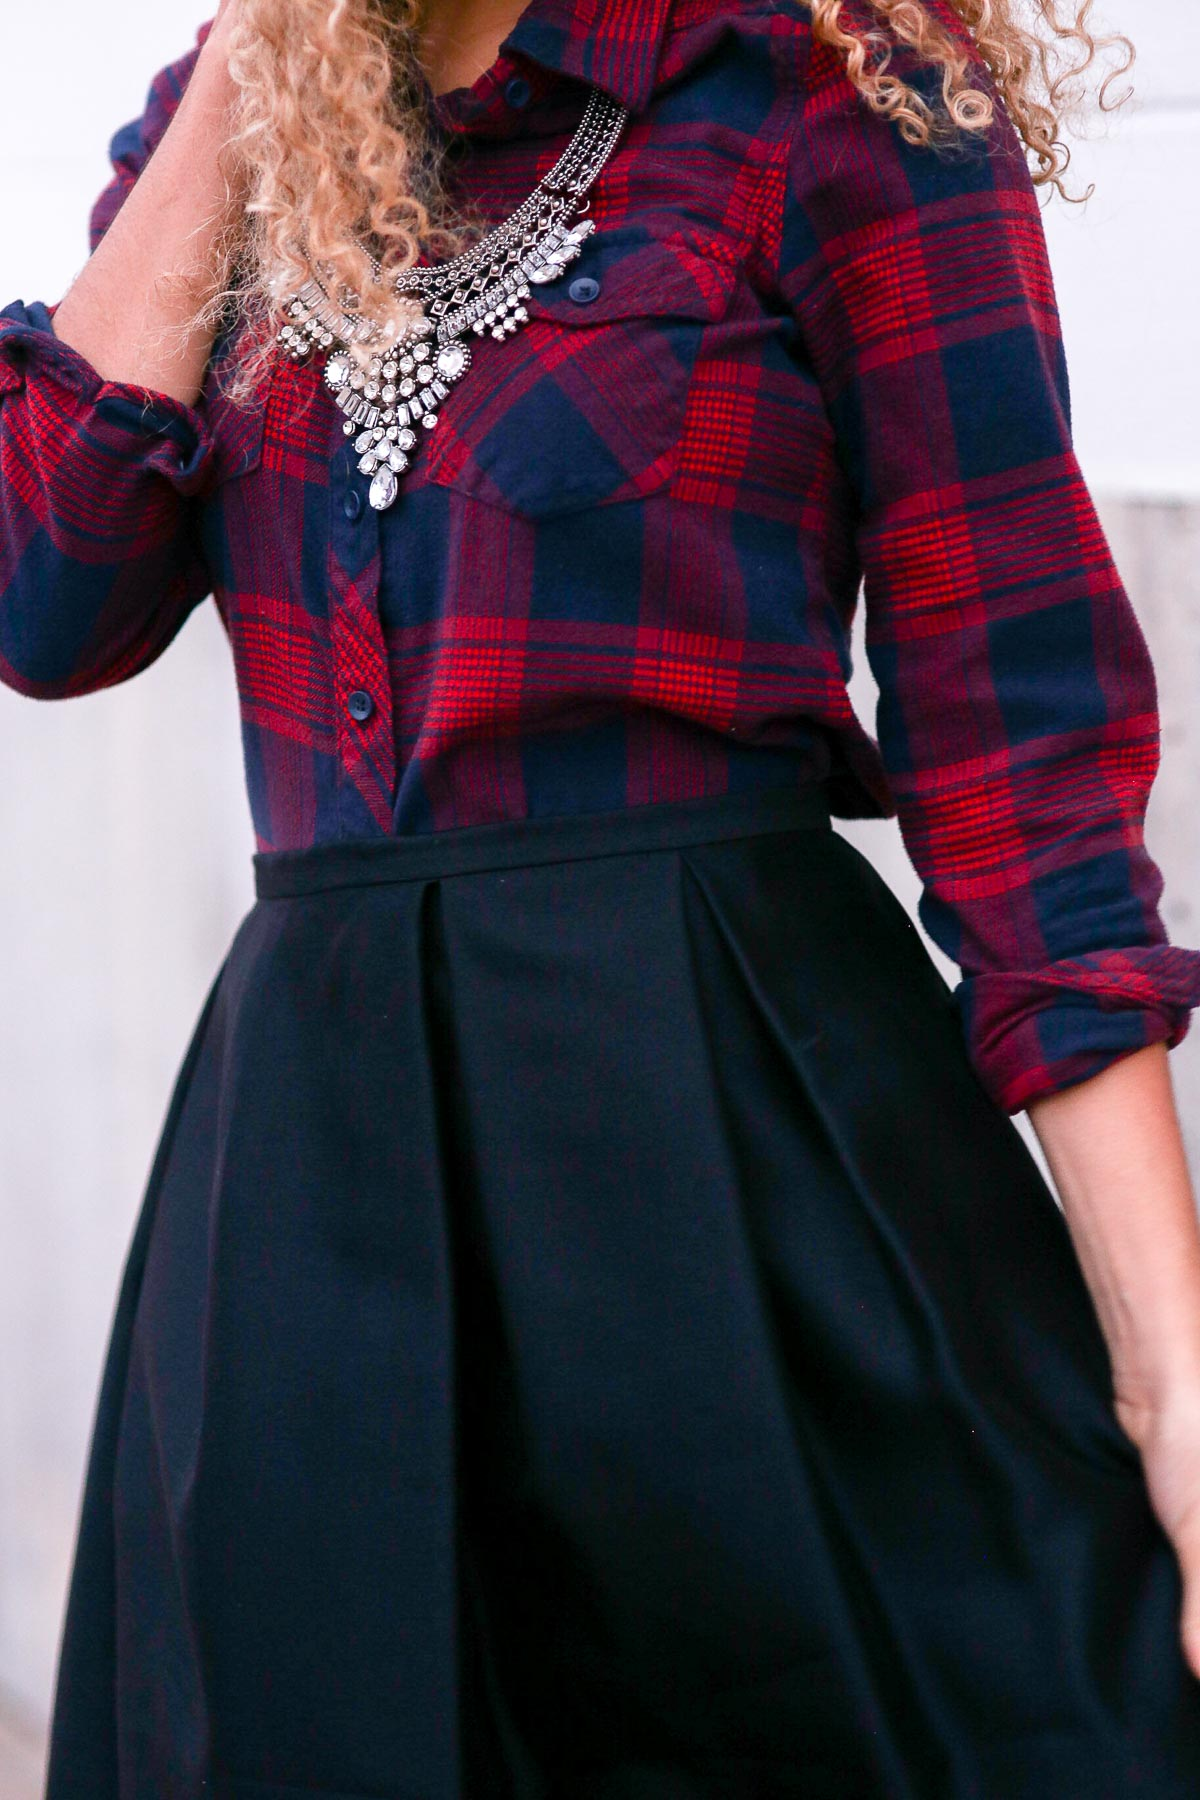 holiday outfits featuring a high waist skirt and a plaid shirt